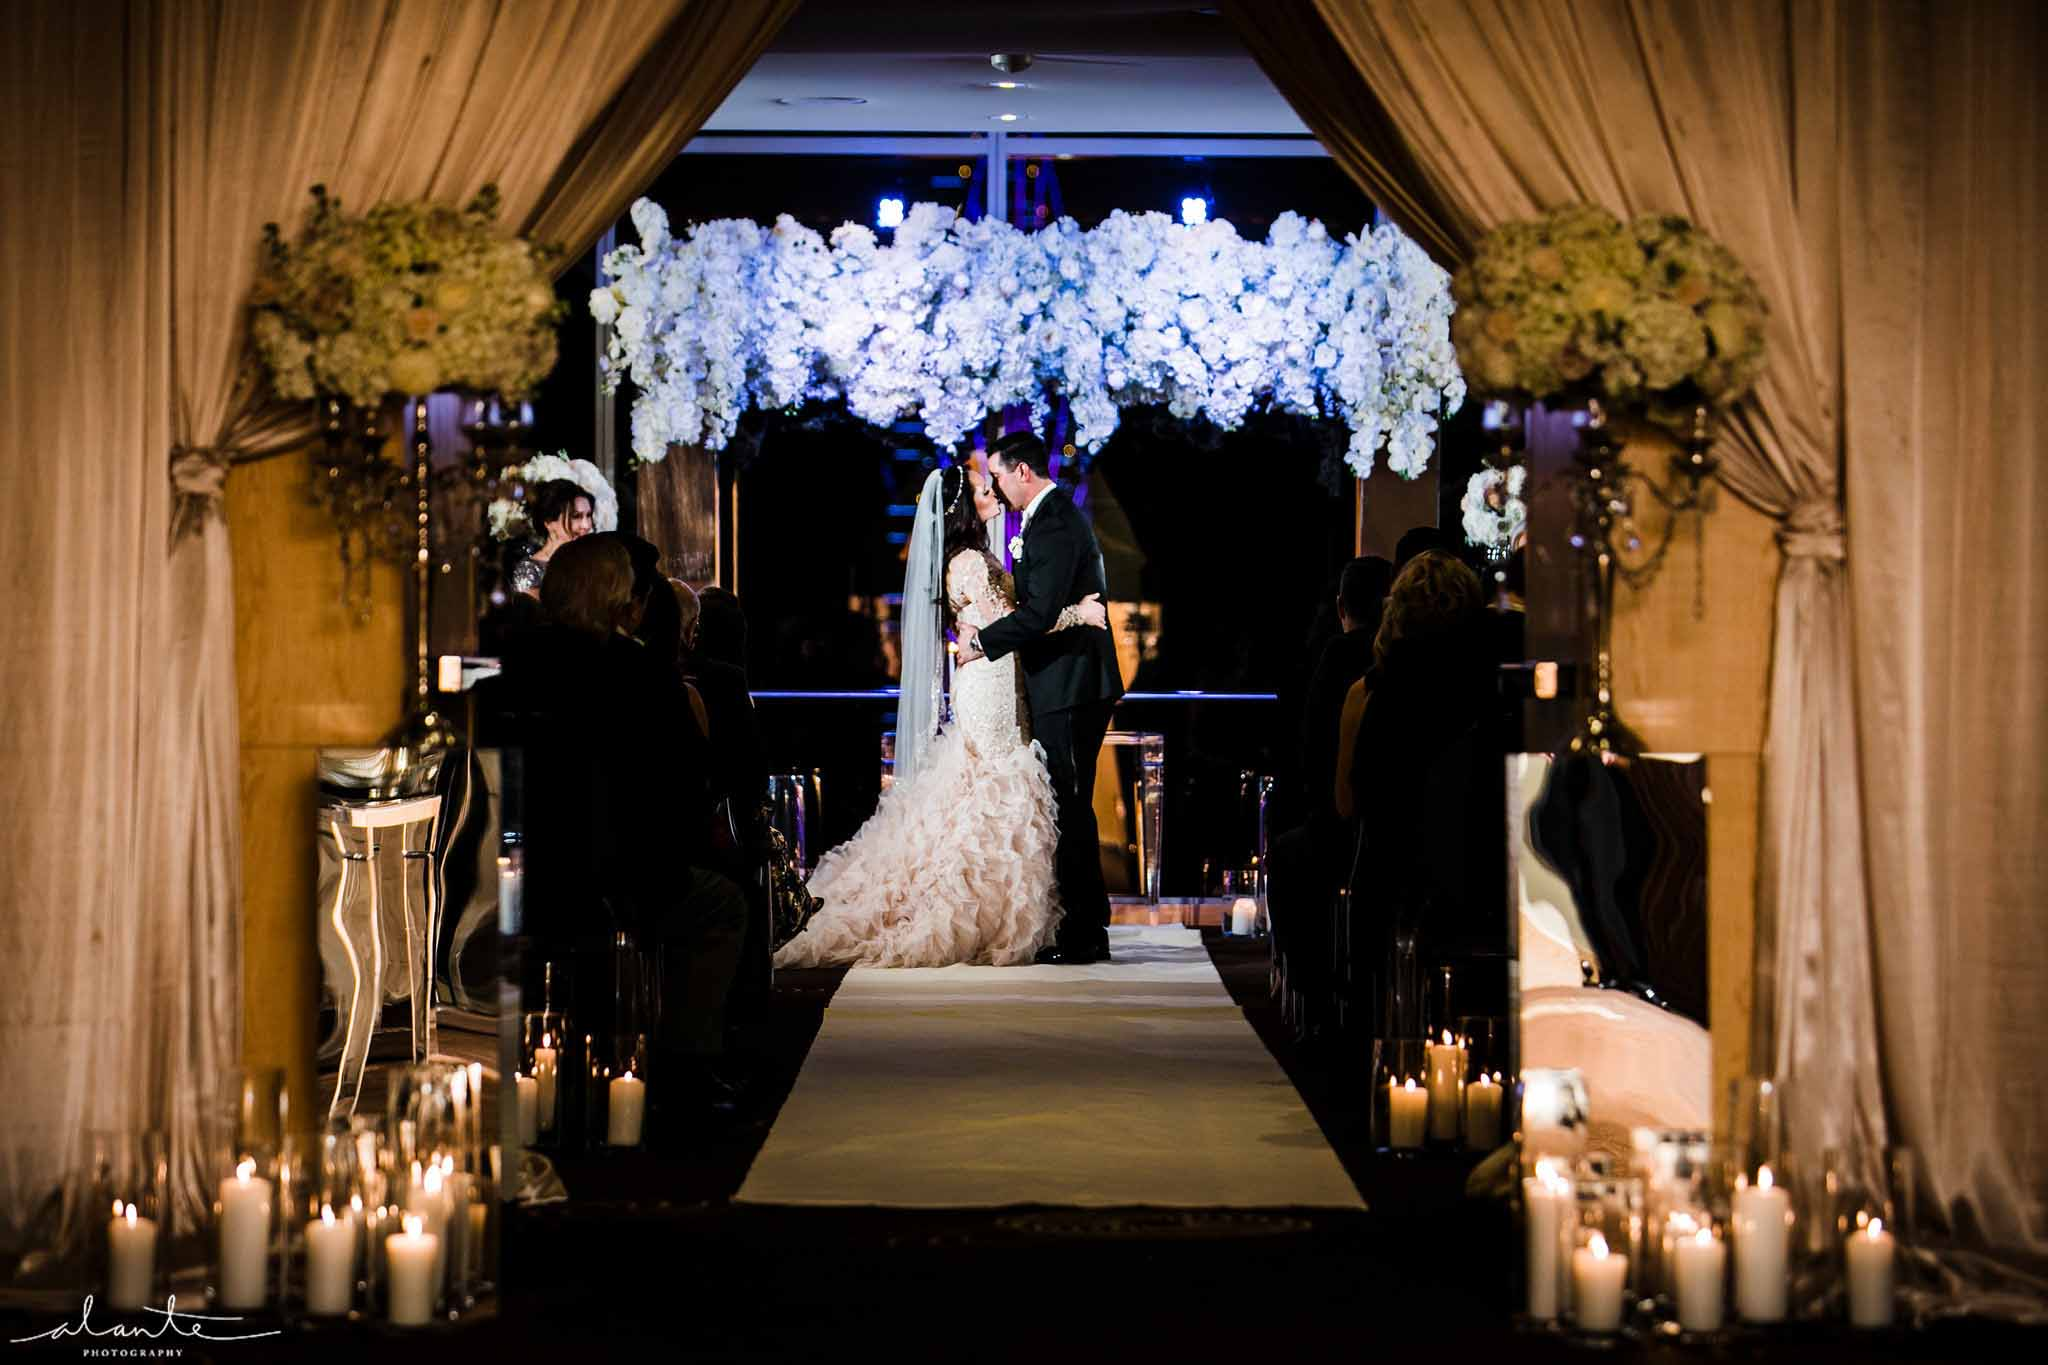 Bride and groom kissing at their winter evening wedding under arch of white orchids - Luxury Winter Wedding at the Four Seasons by Flora Nova Design Seattle